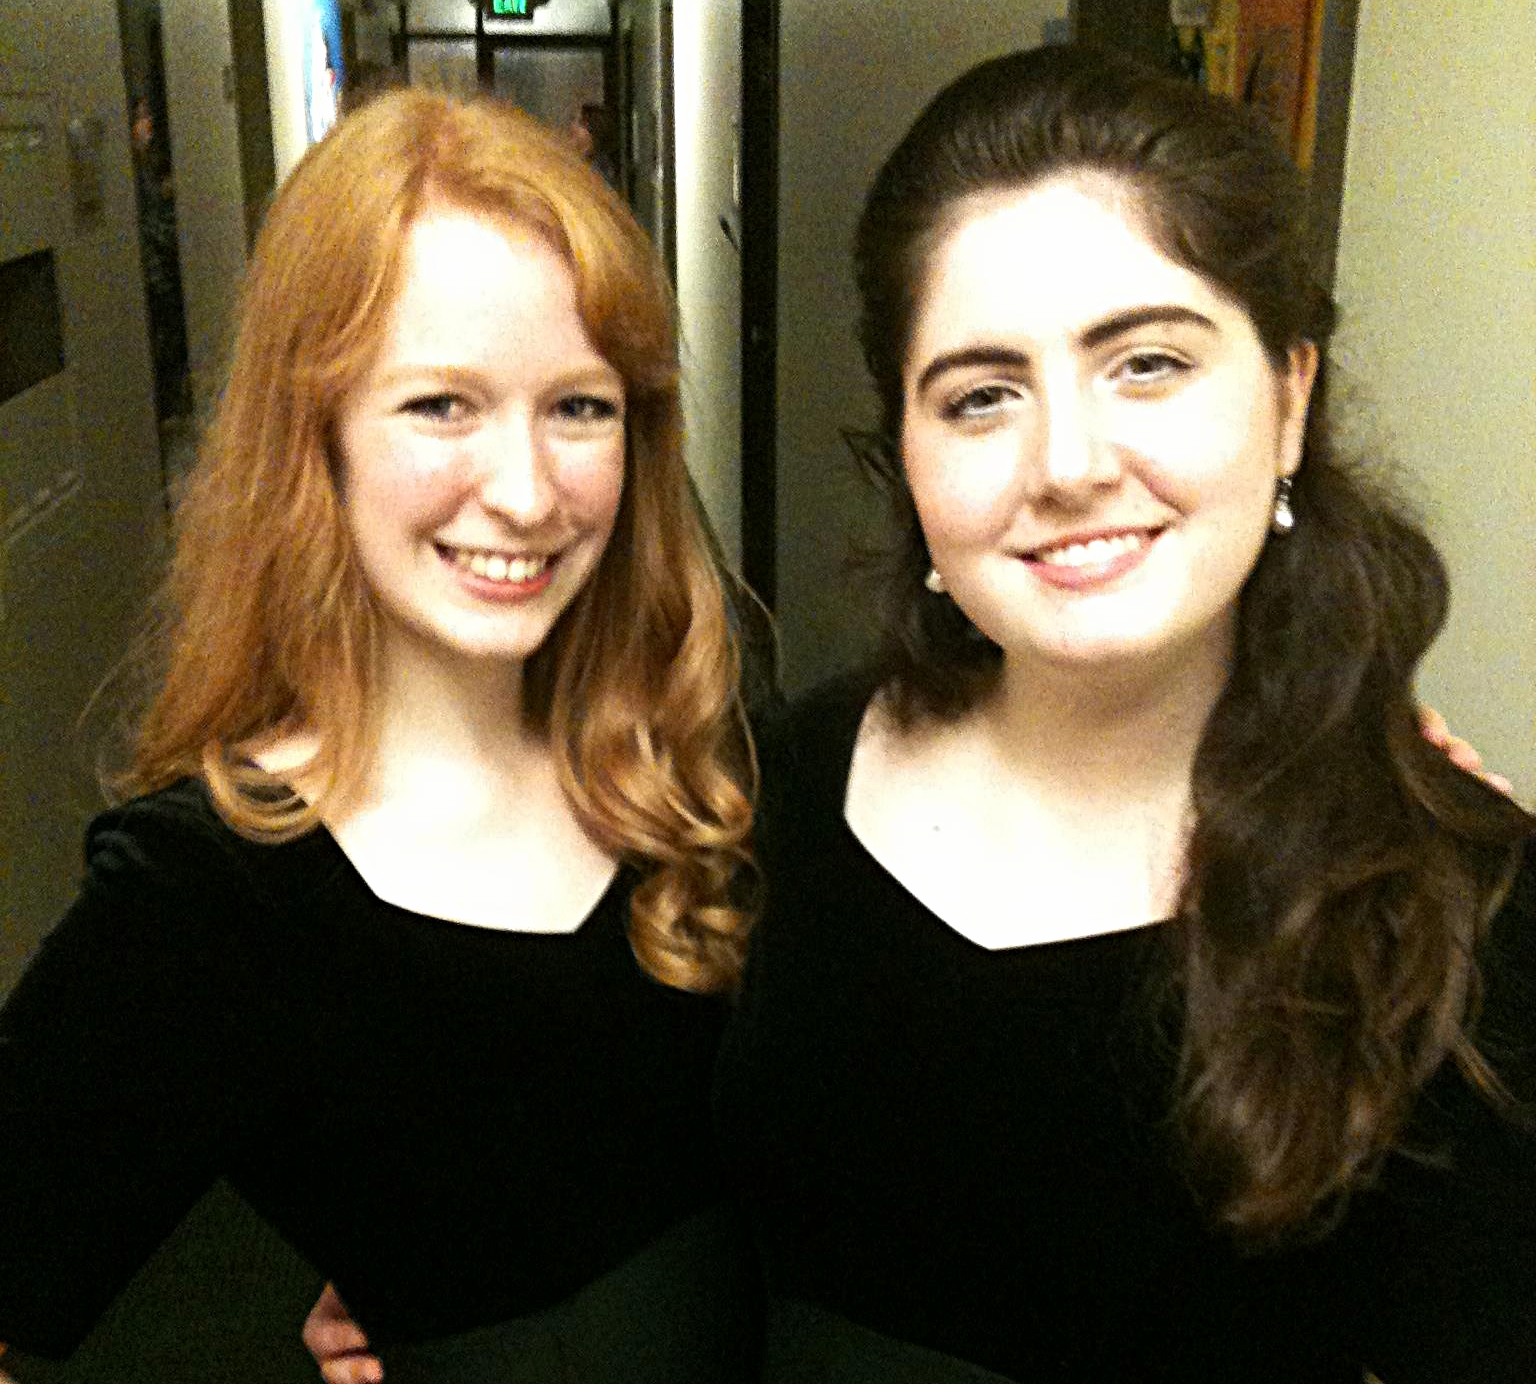 After a choir concert with my roommate!